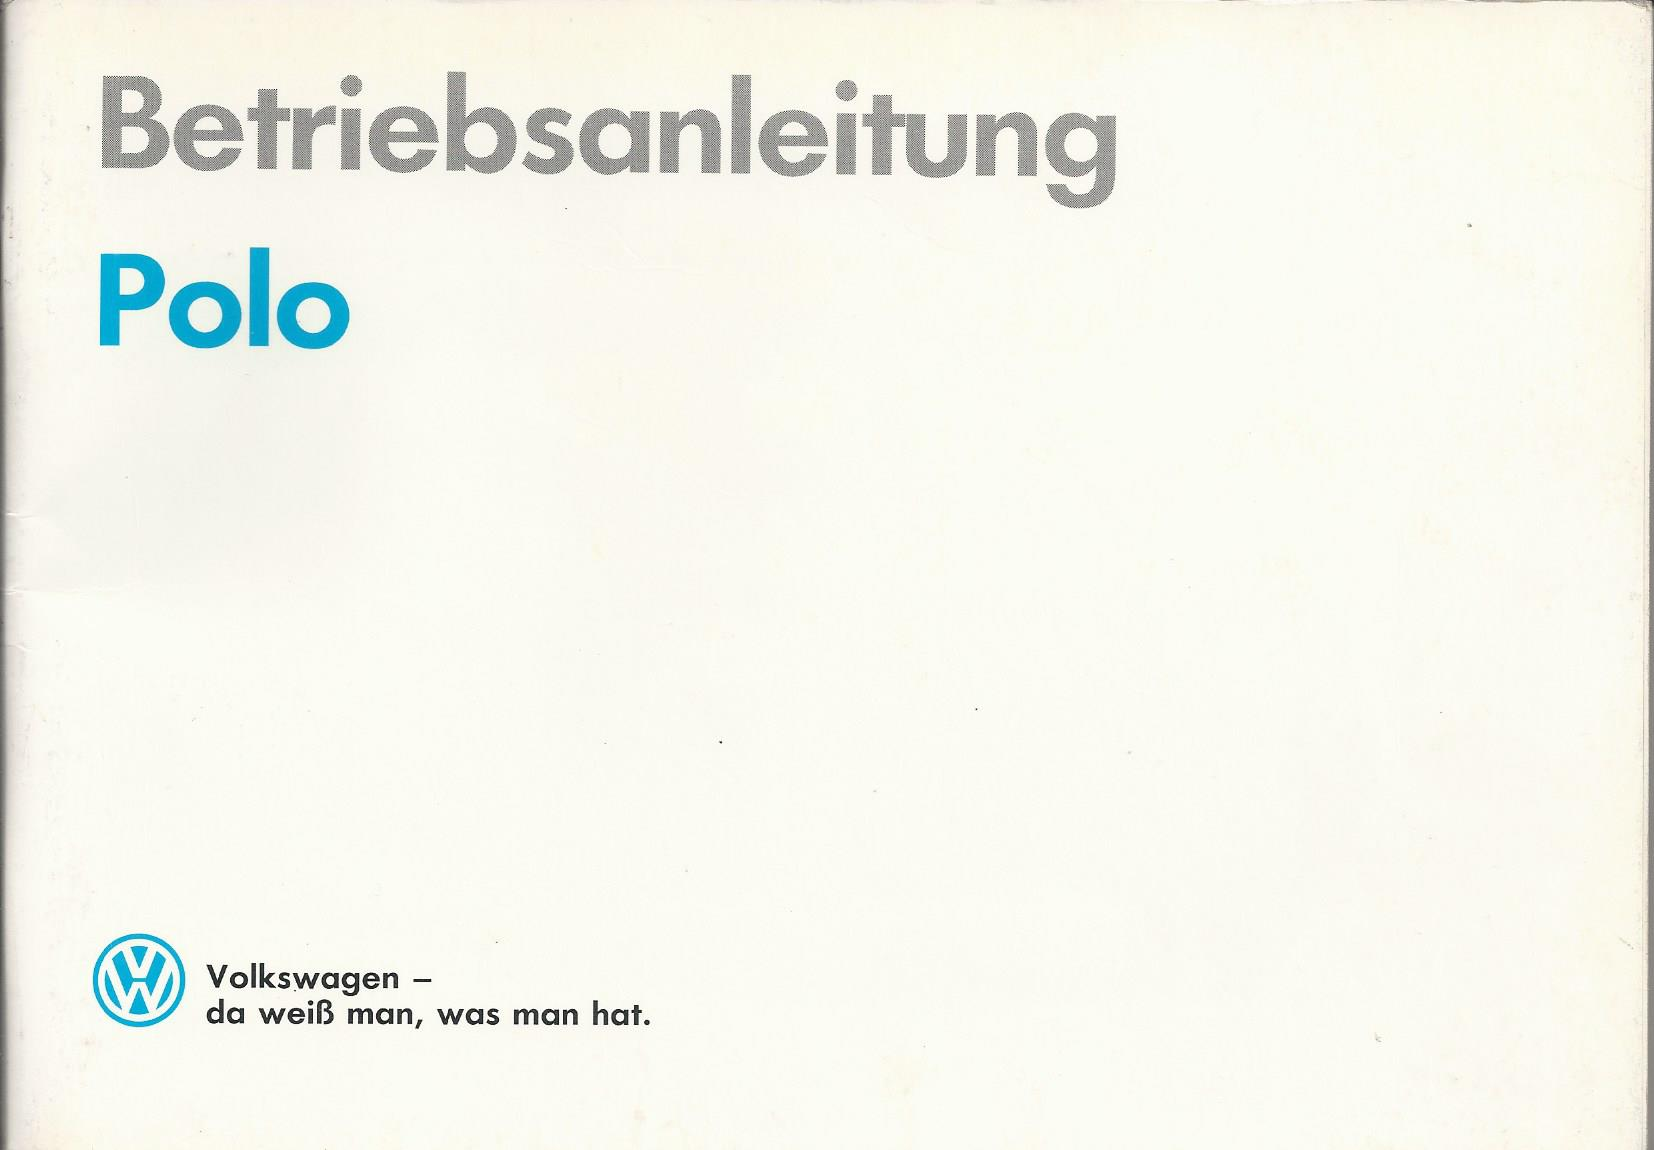 vw polo 2 bedienungsanleitung handbuch 1990 betriebsanleitung ba ebay. Black Bedroom Furniture Sets. Home Design Ideas